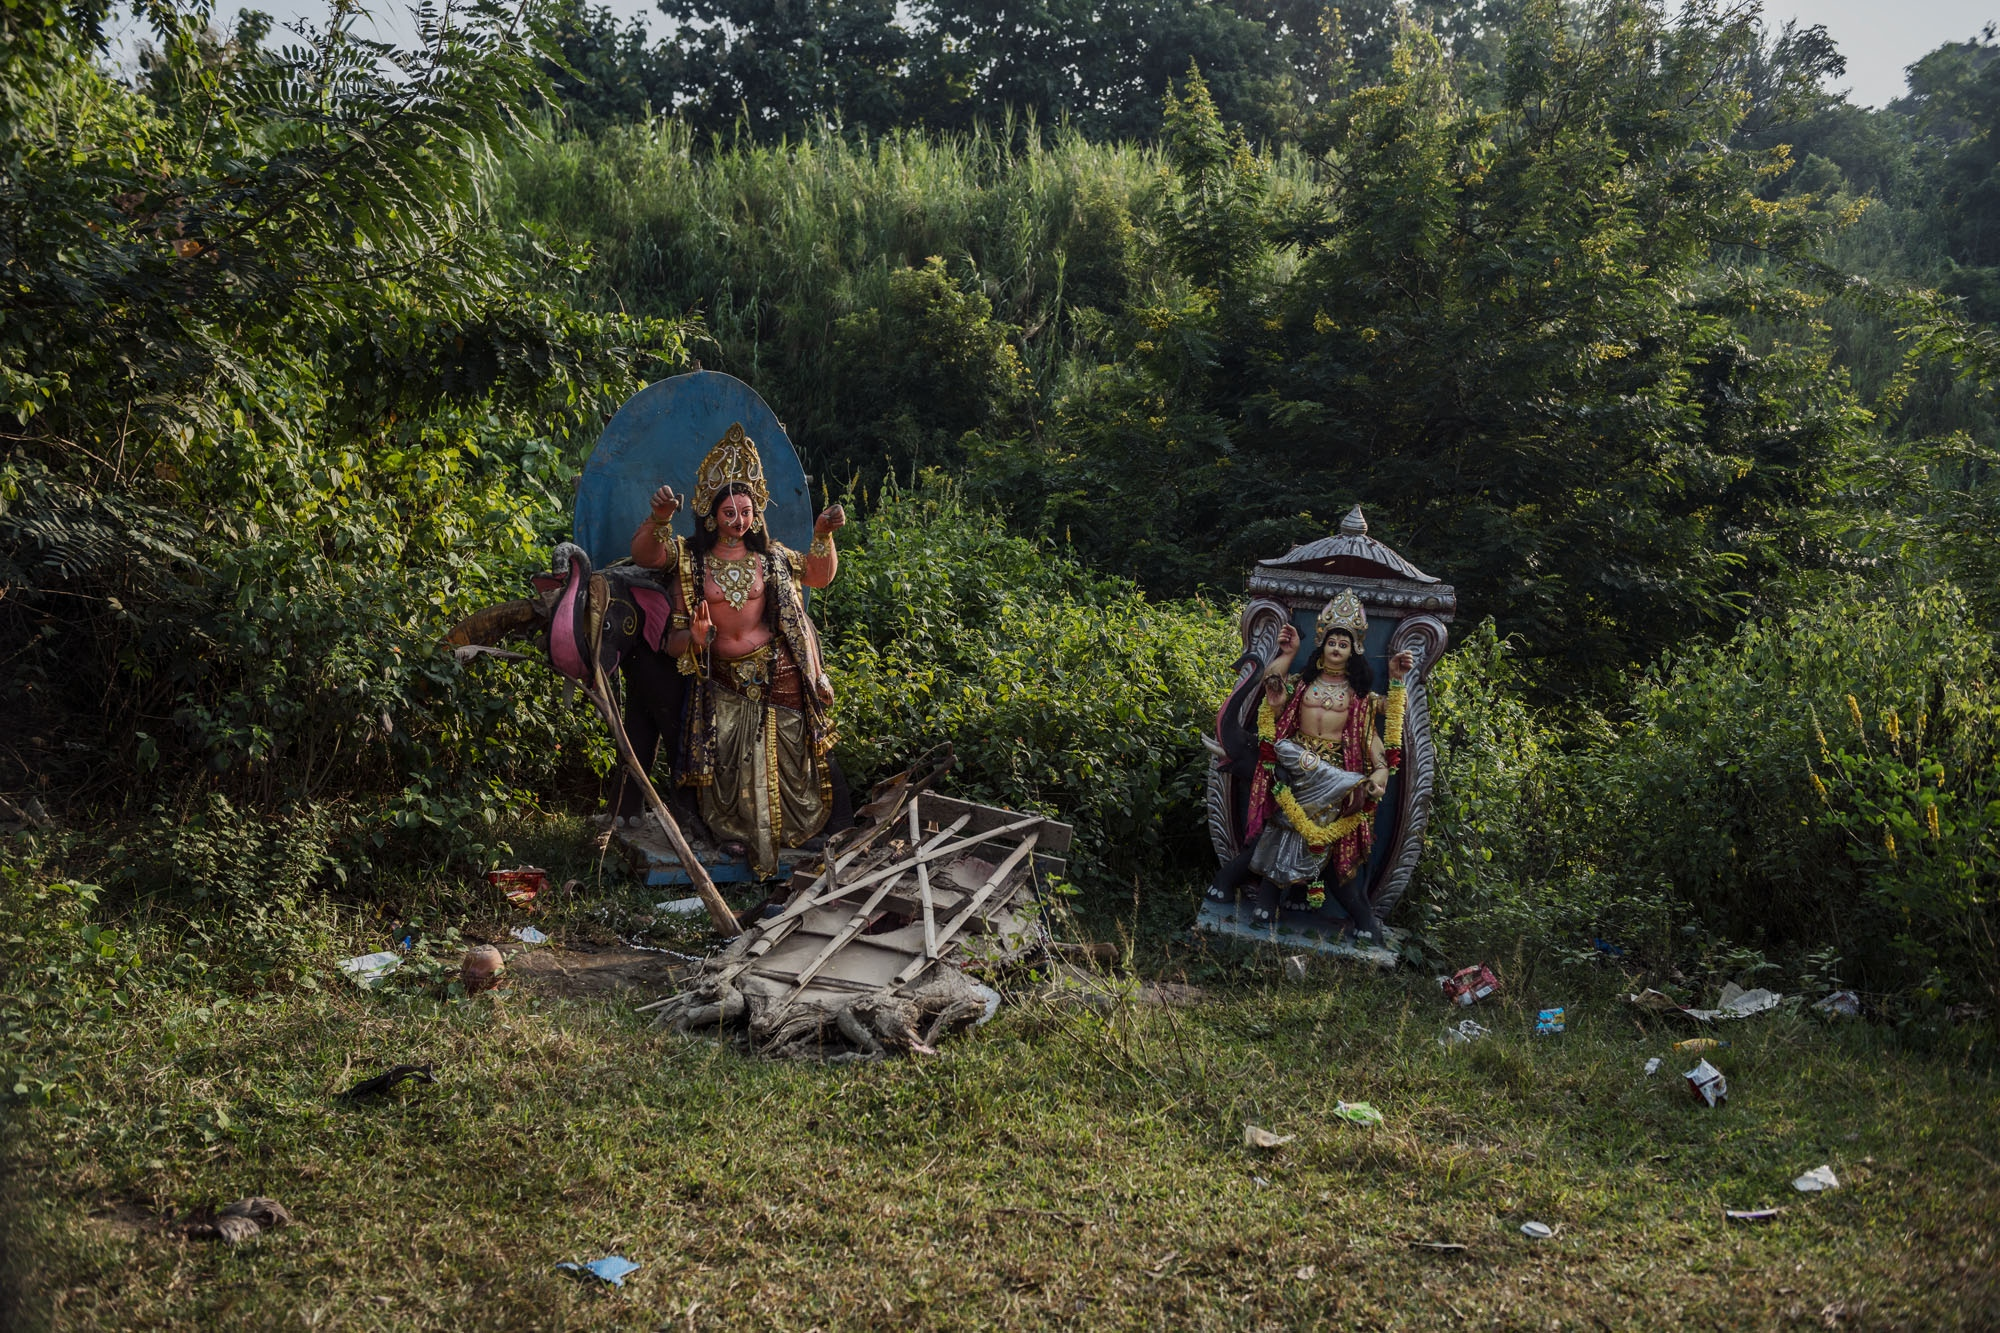 Hindu statues along a a road leading out of Guwahati, Assam, India.